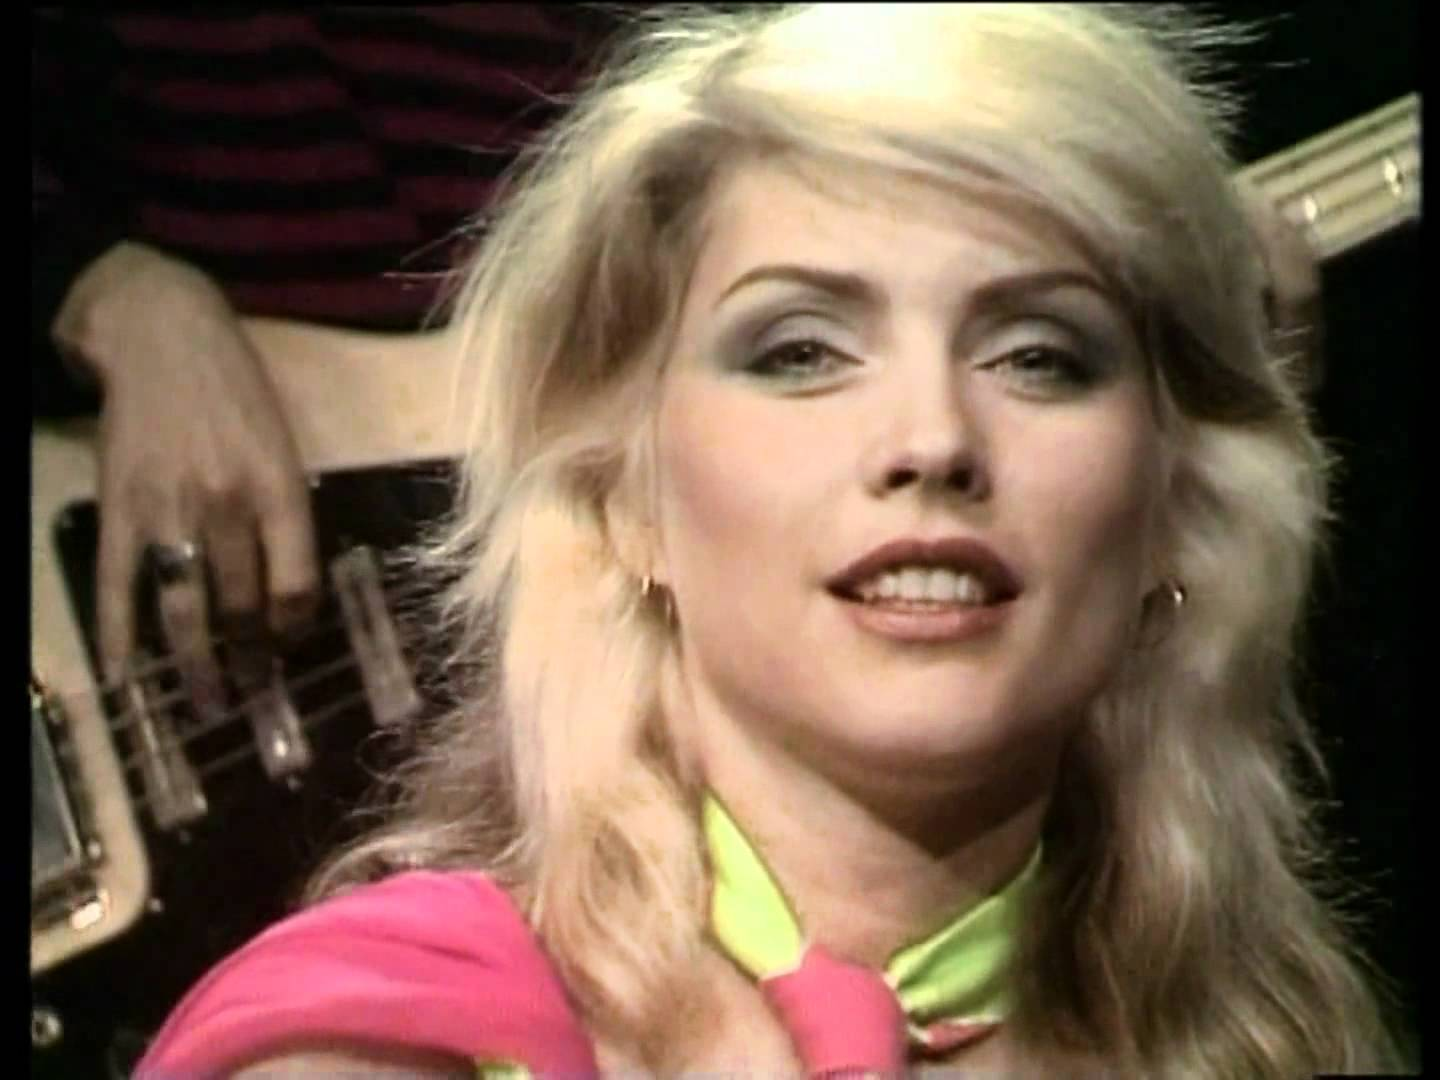 69f32f6c63b5  Blondie  HeartOfGlass. We go back to 1979 when Blondie s Heart of Glass  was at Nº1 in 13 countries including the US and the UK. According to  Rolling Stone ...